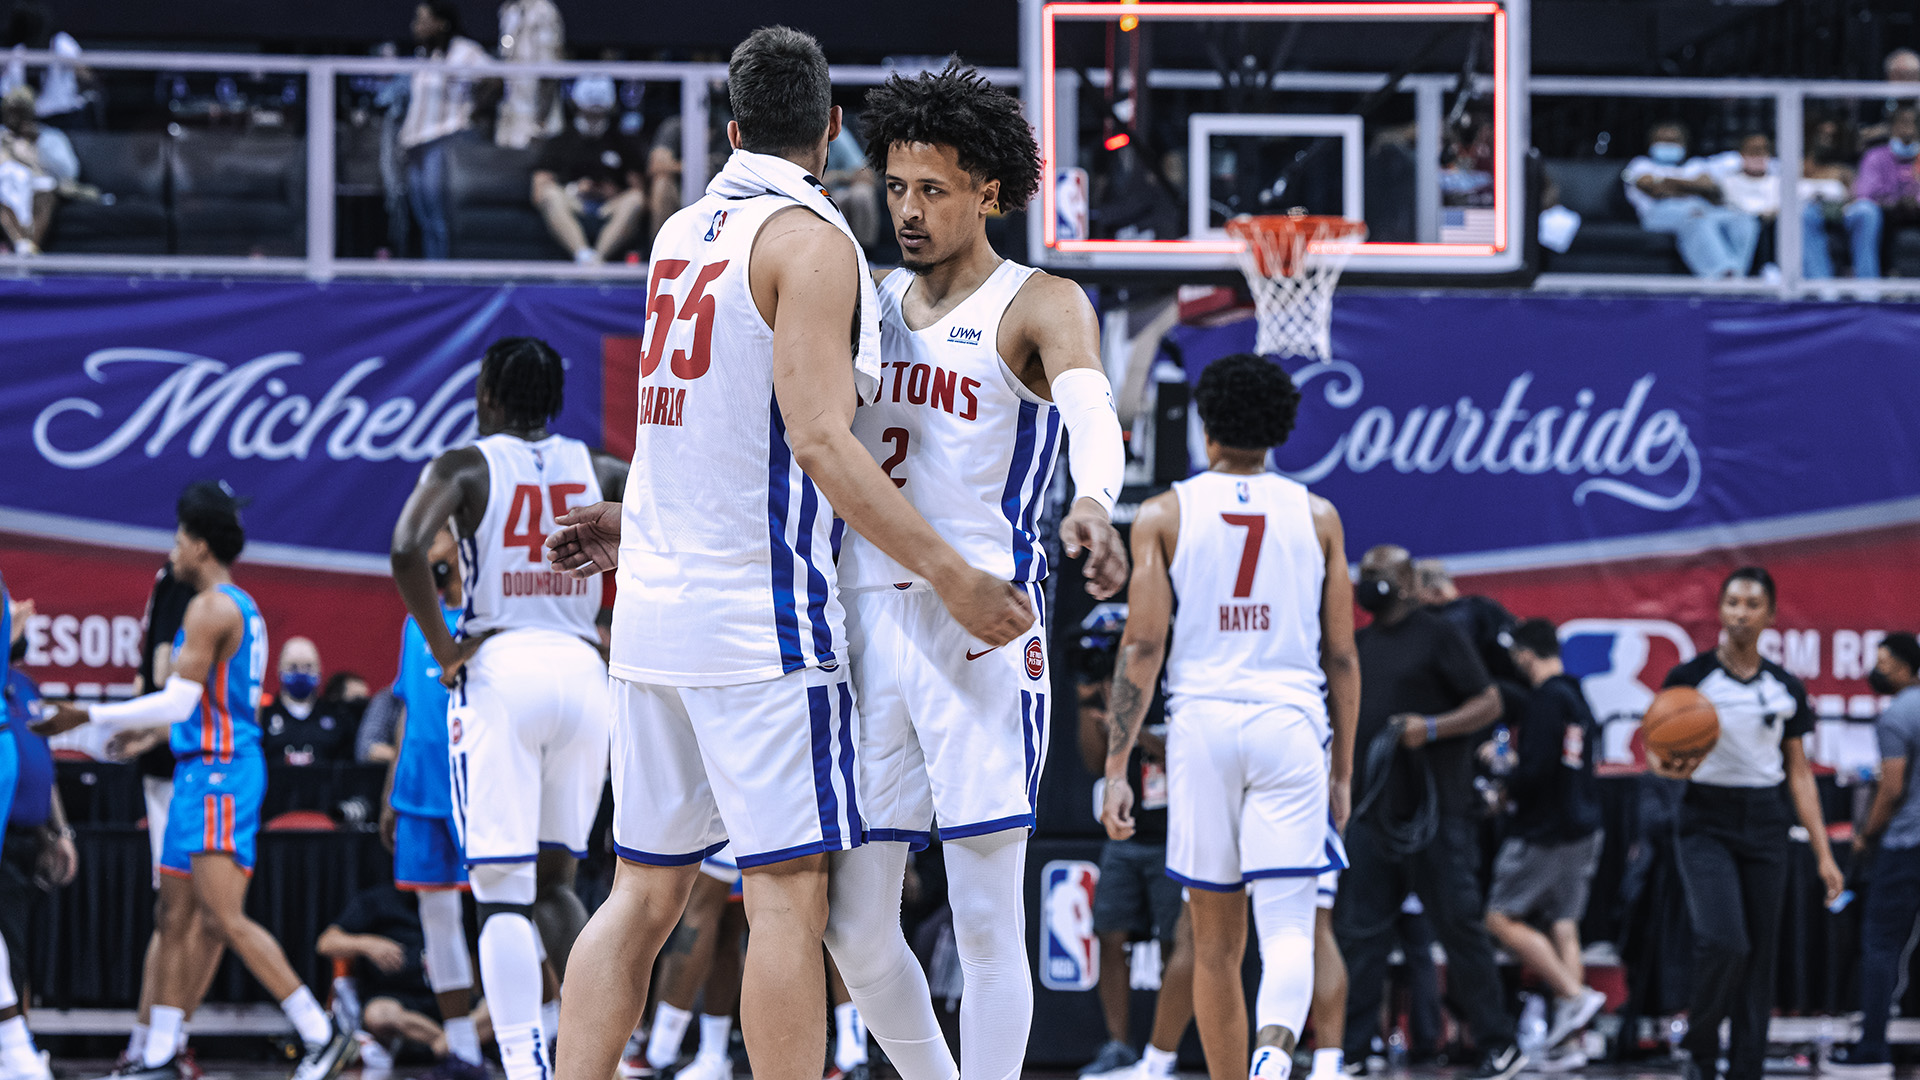 Pistons Hits, presented by Draft Kings: Summer League